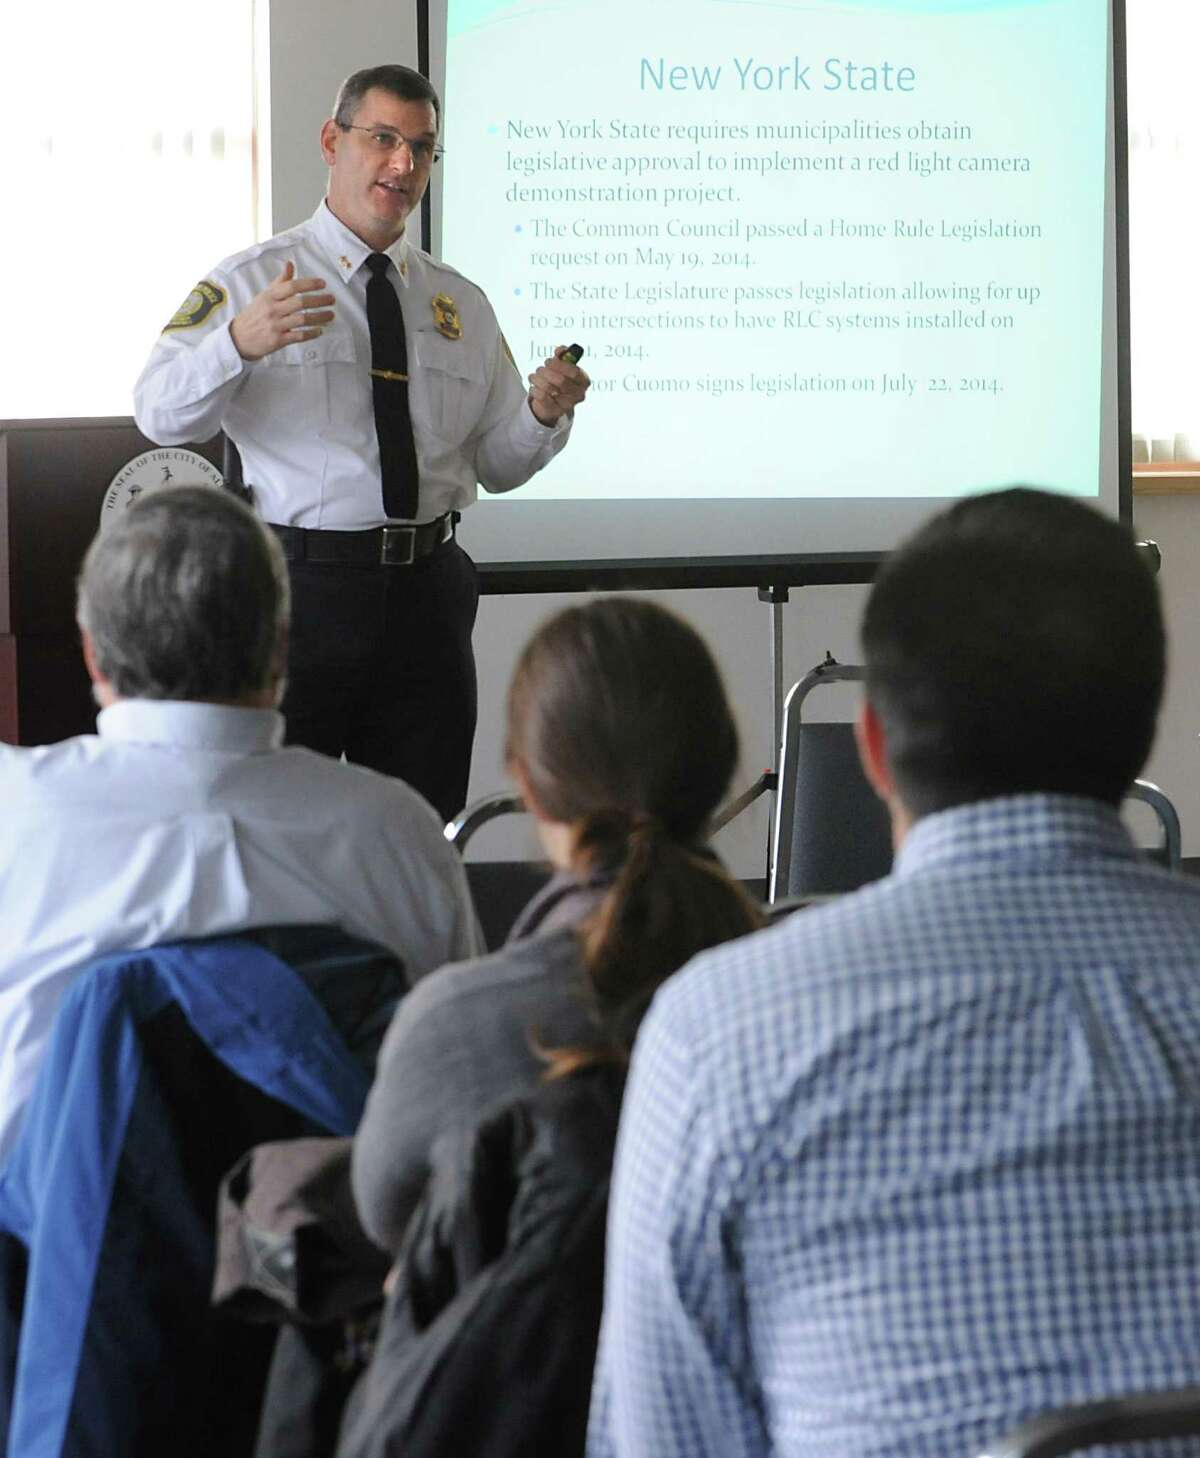 Deputy Chief Brendan Cox speaks during an Albany Police Department forum on red-light cameras at the Albany Community Development Agency on Tuesday, Dec. 2, 2014 in Albany, N.Y. (Lori Van Buren / Times Union)